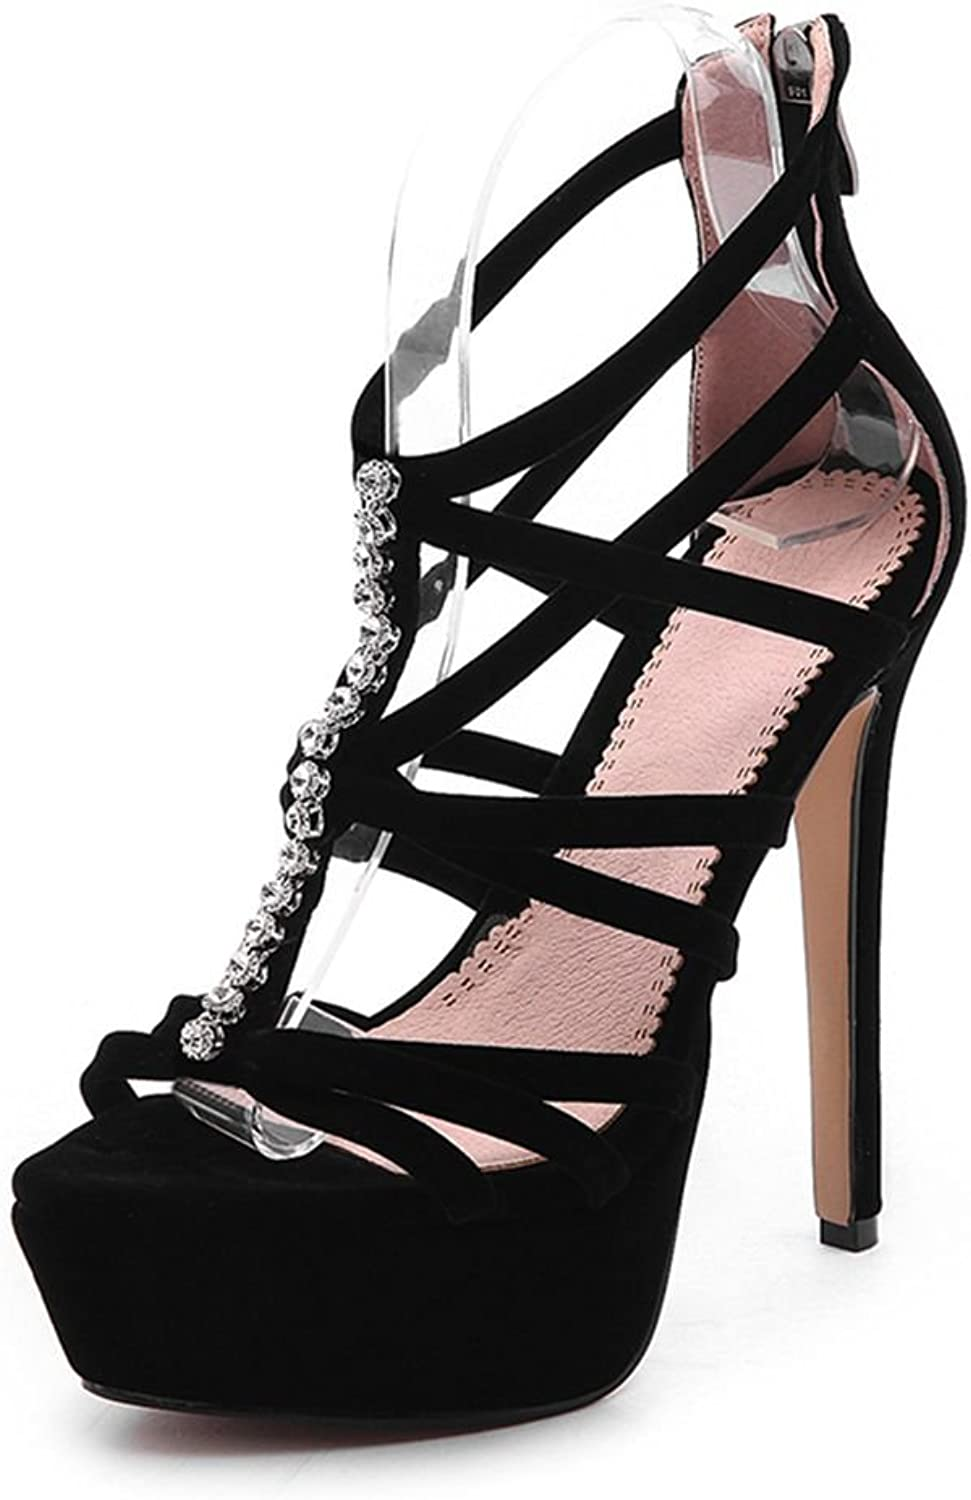 SaraIris Wowen Gladiator-Sandals Strap Platform Sky High Heels for Summer